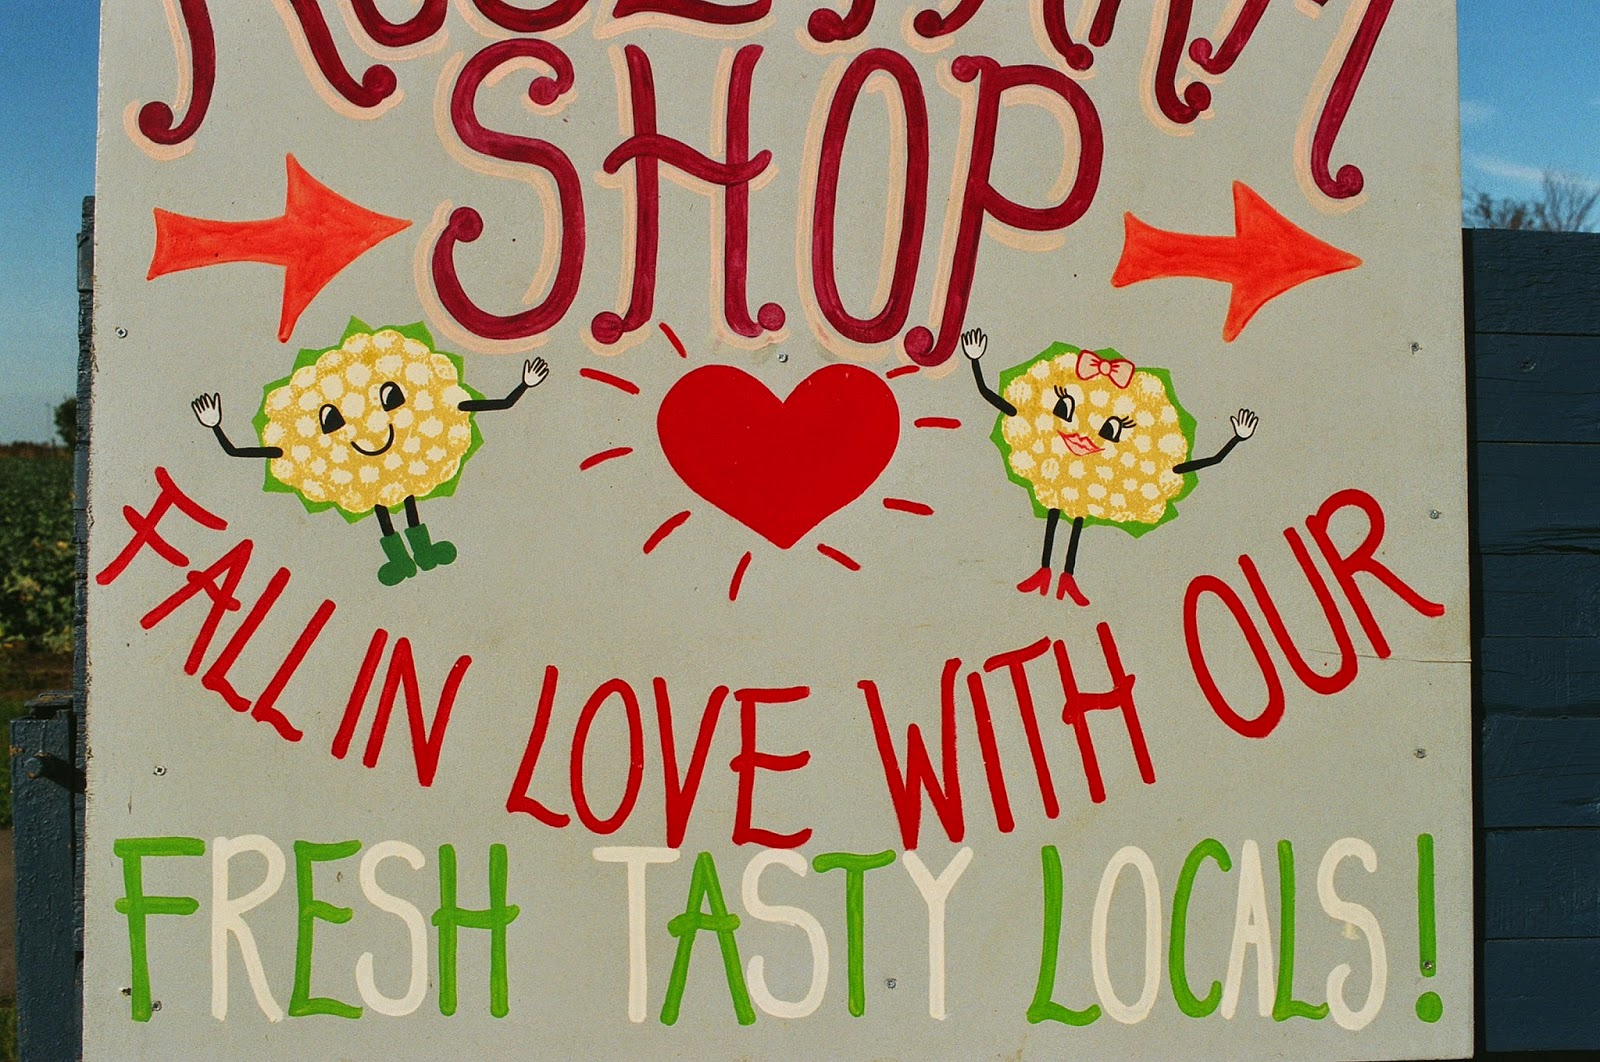 LOCAL PRODUCE, HAND RENDERED SIGNS, FOLK ART, HEALTHY DIETS, SHOP LOCAL, ARTISAN SUPPLIERS, ANTHROPOMORPHISED VEGETABLES,  © VAC 100 DAYS 4 MILLION CONVERSATIONS